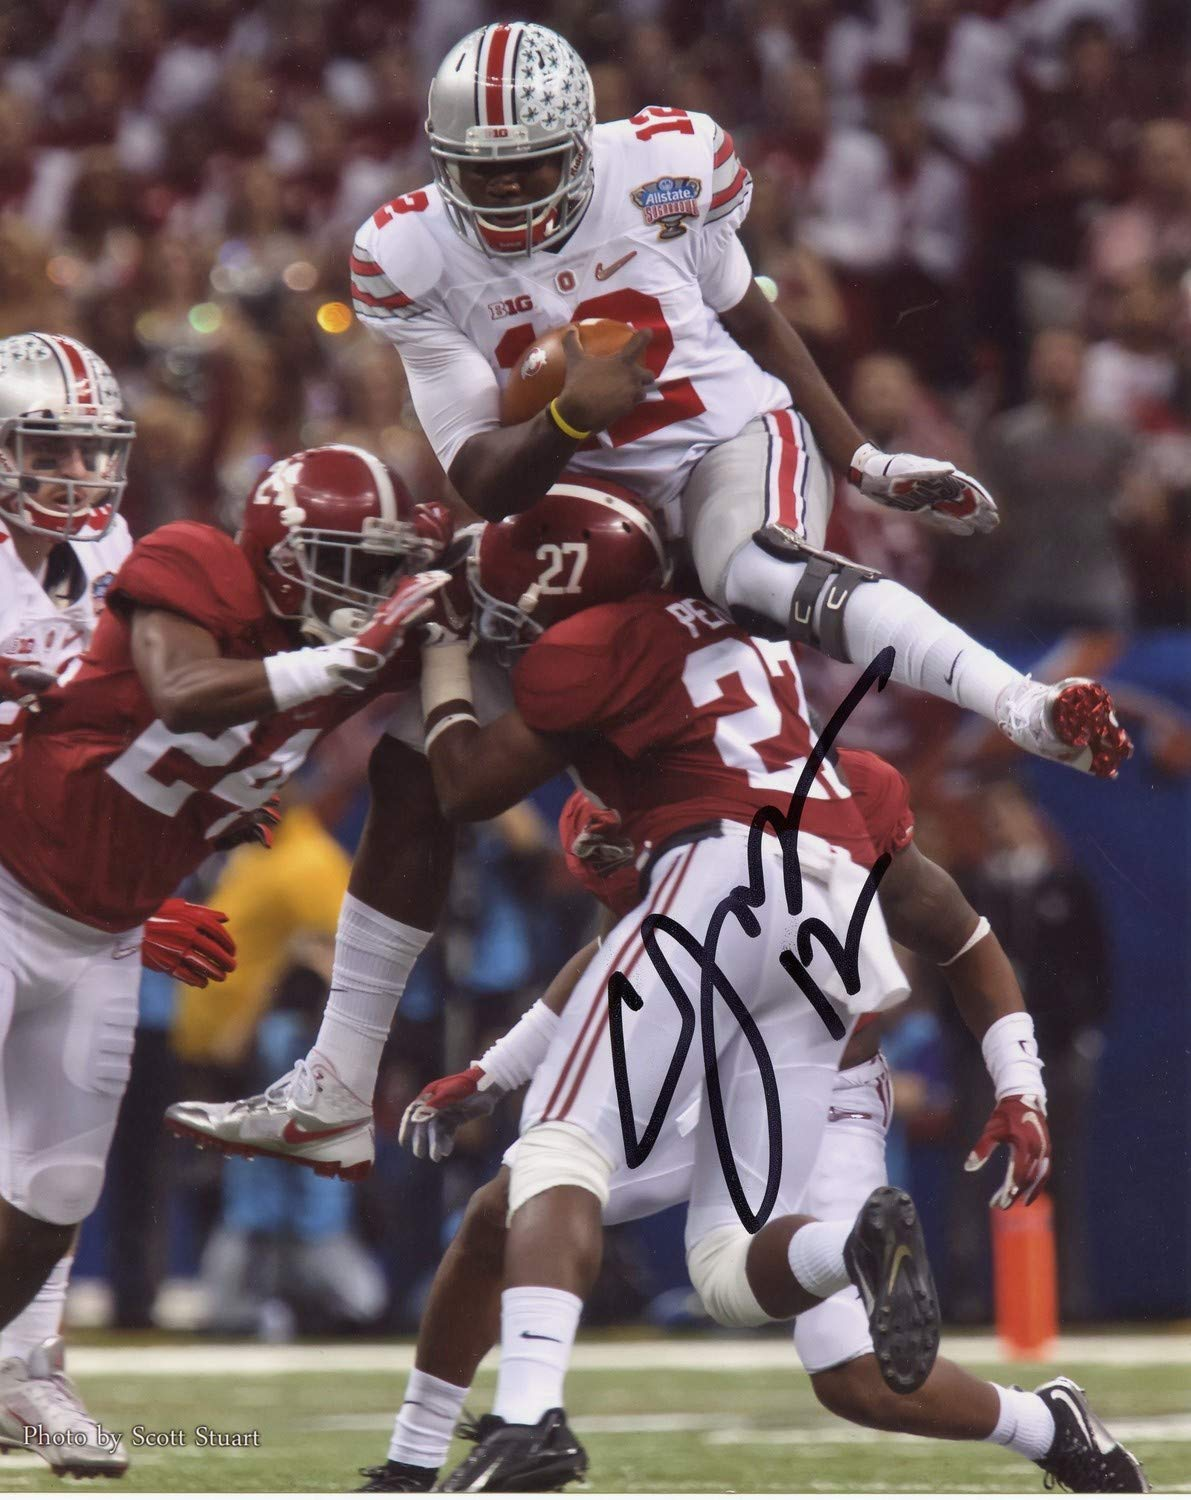 Cardale Jones Ohio State Buckeyes Autographed Signed 8x10 Photo Certified Authentic